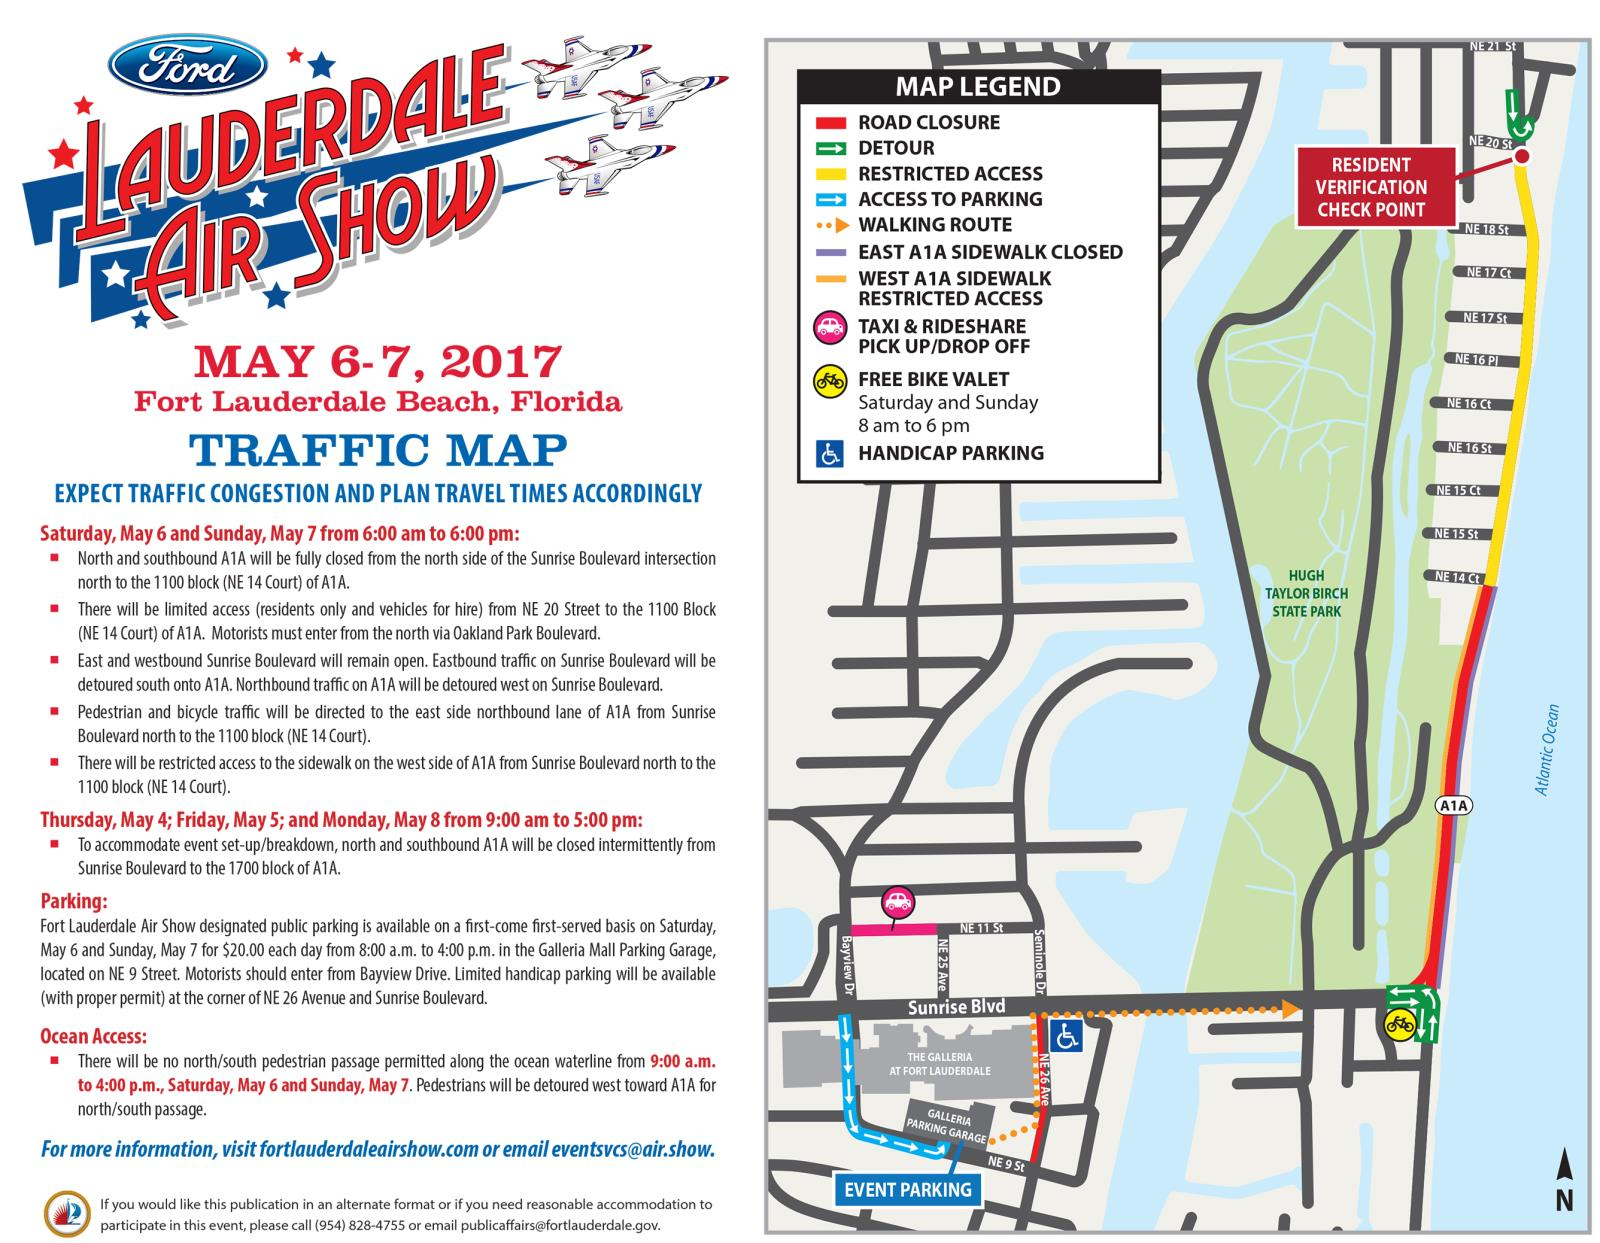 City of Fort Lauderdale, FL : City News : Fort Lauderdale Air Show